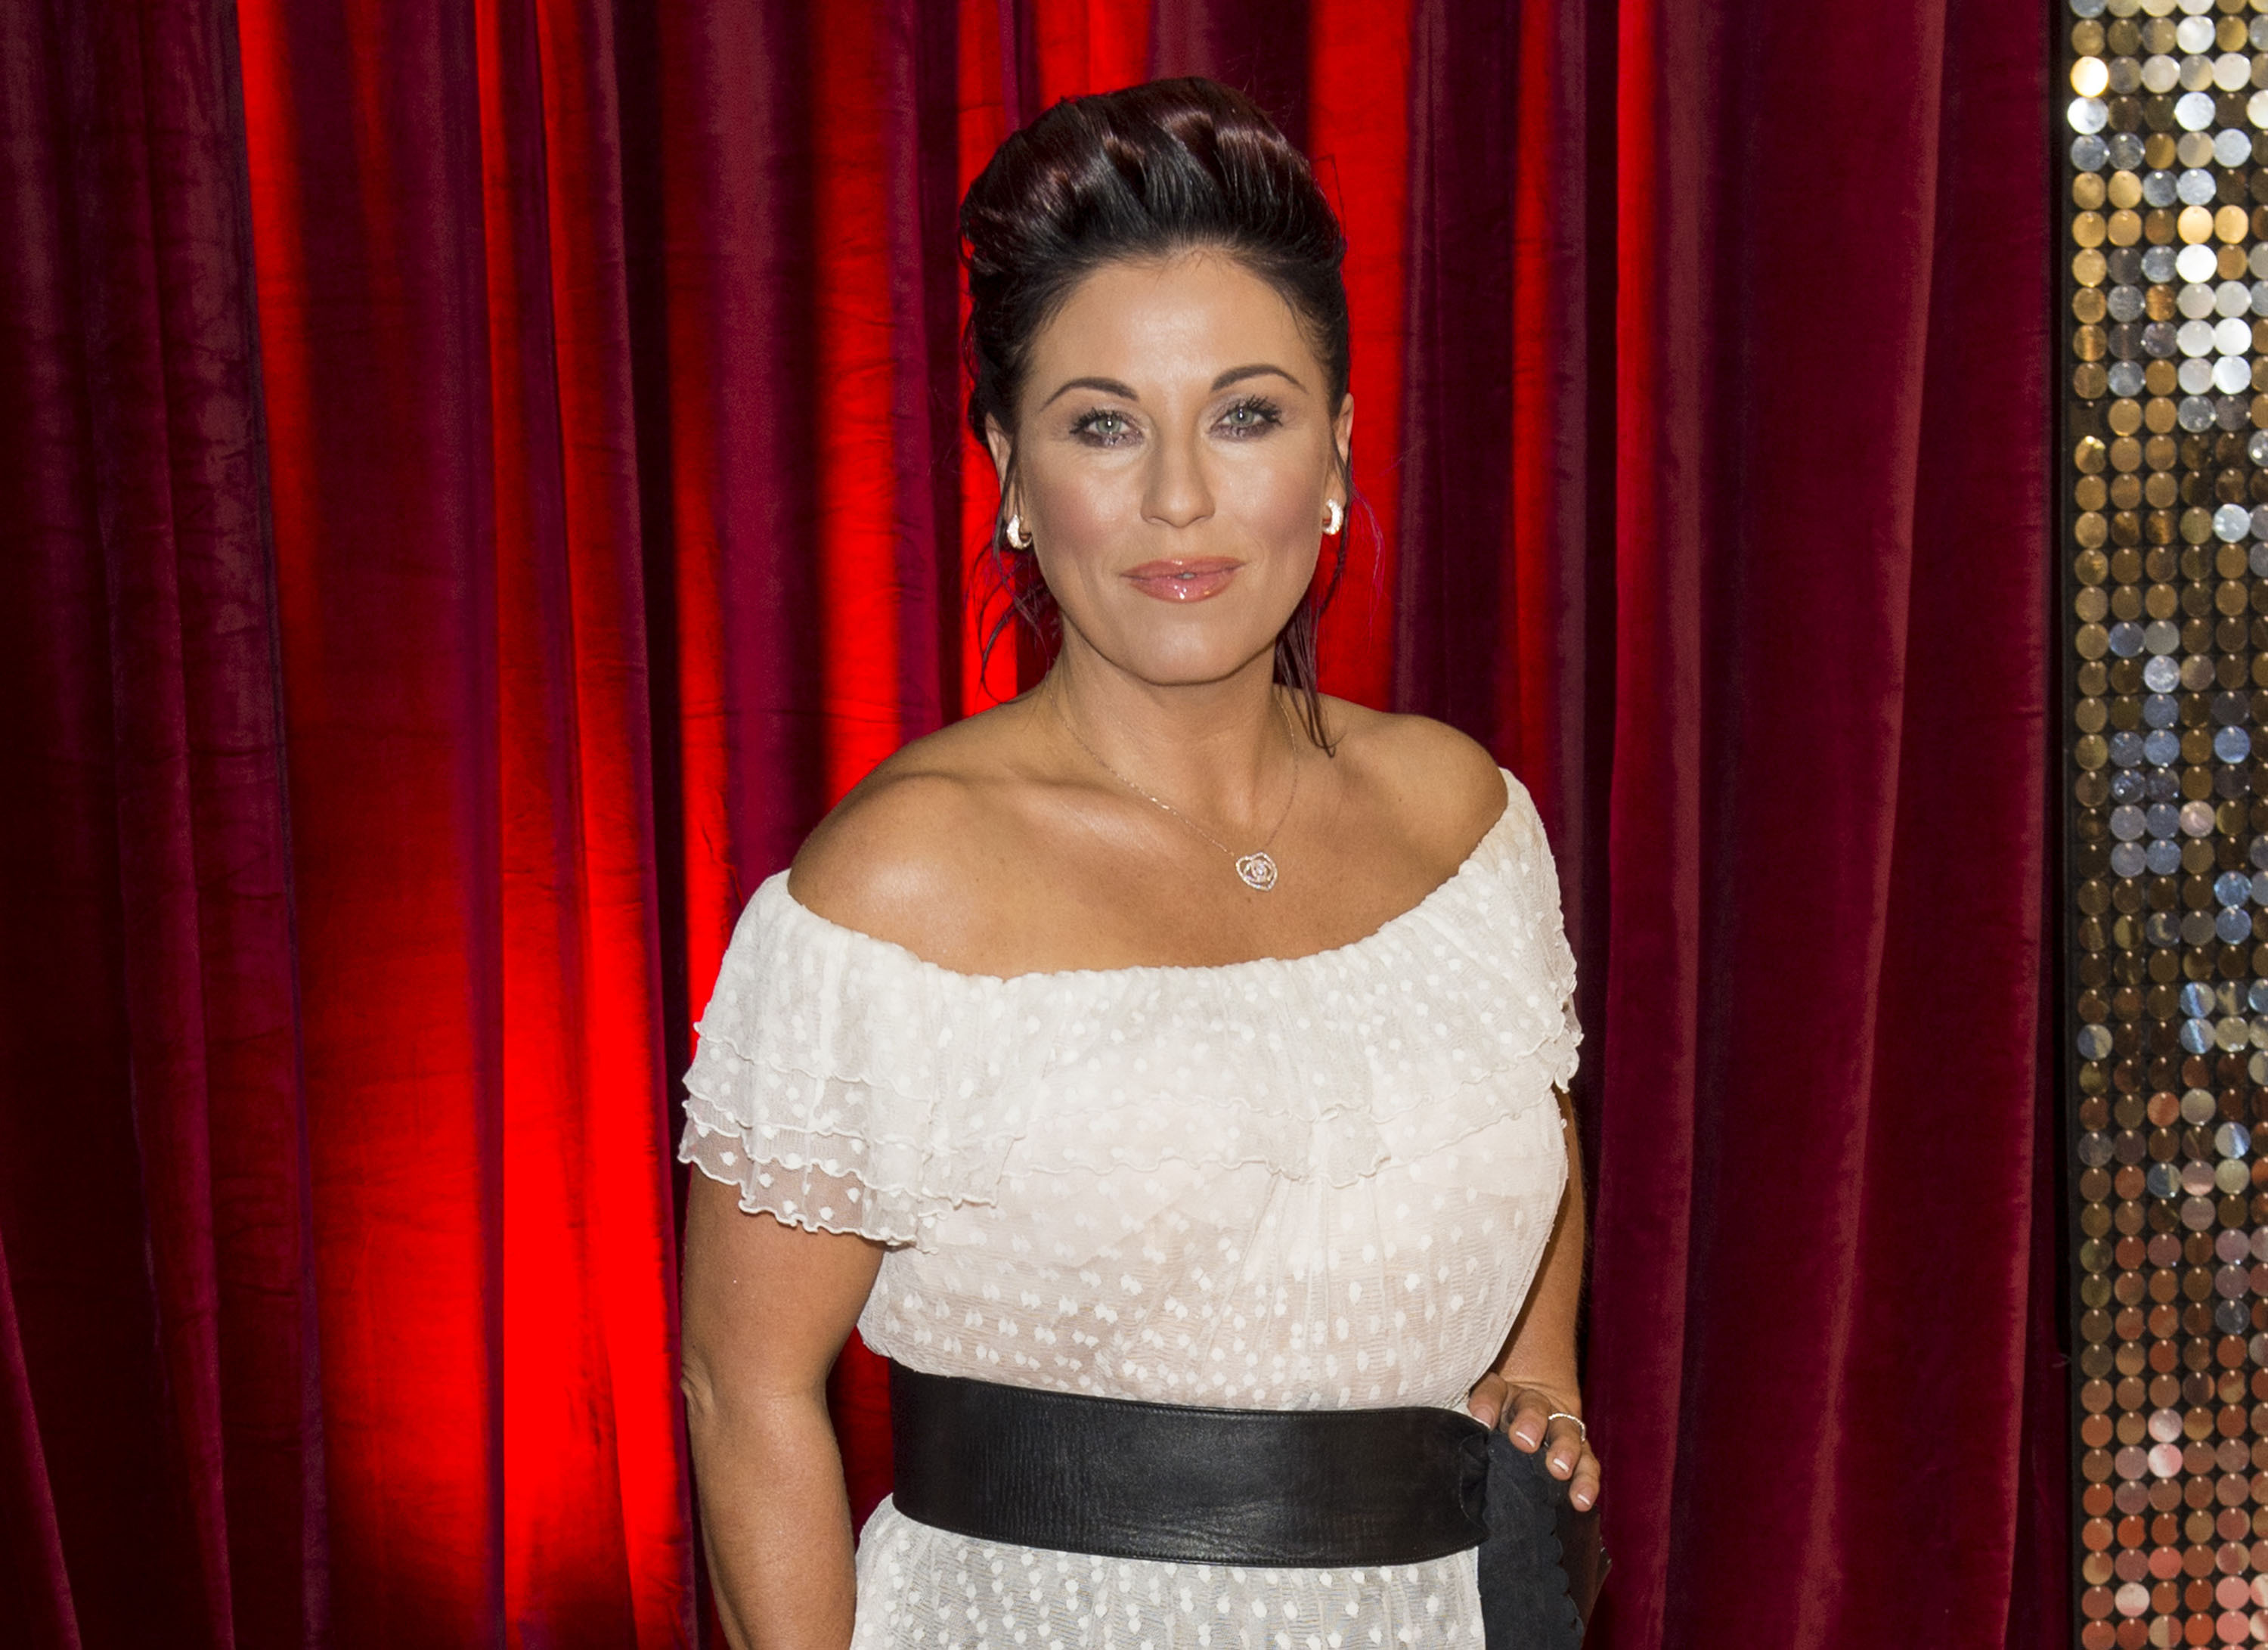 Celebrites Jessie Wallace nudes (66 photos), Topless, Leaked, Selfie, legs 2020